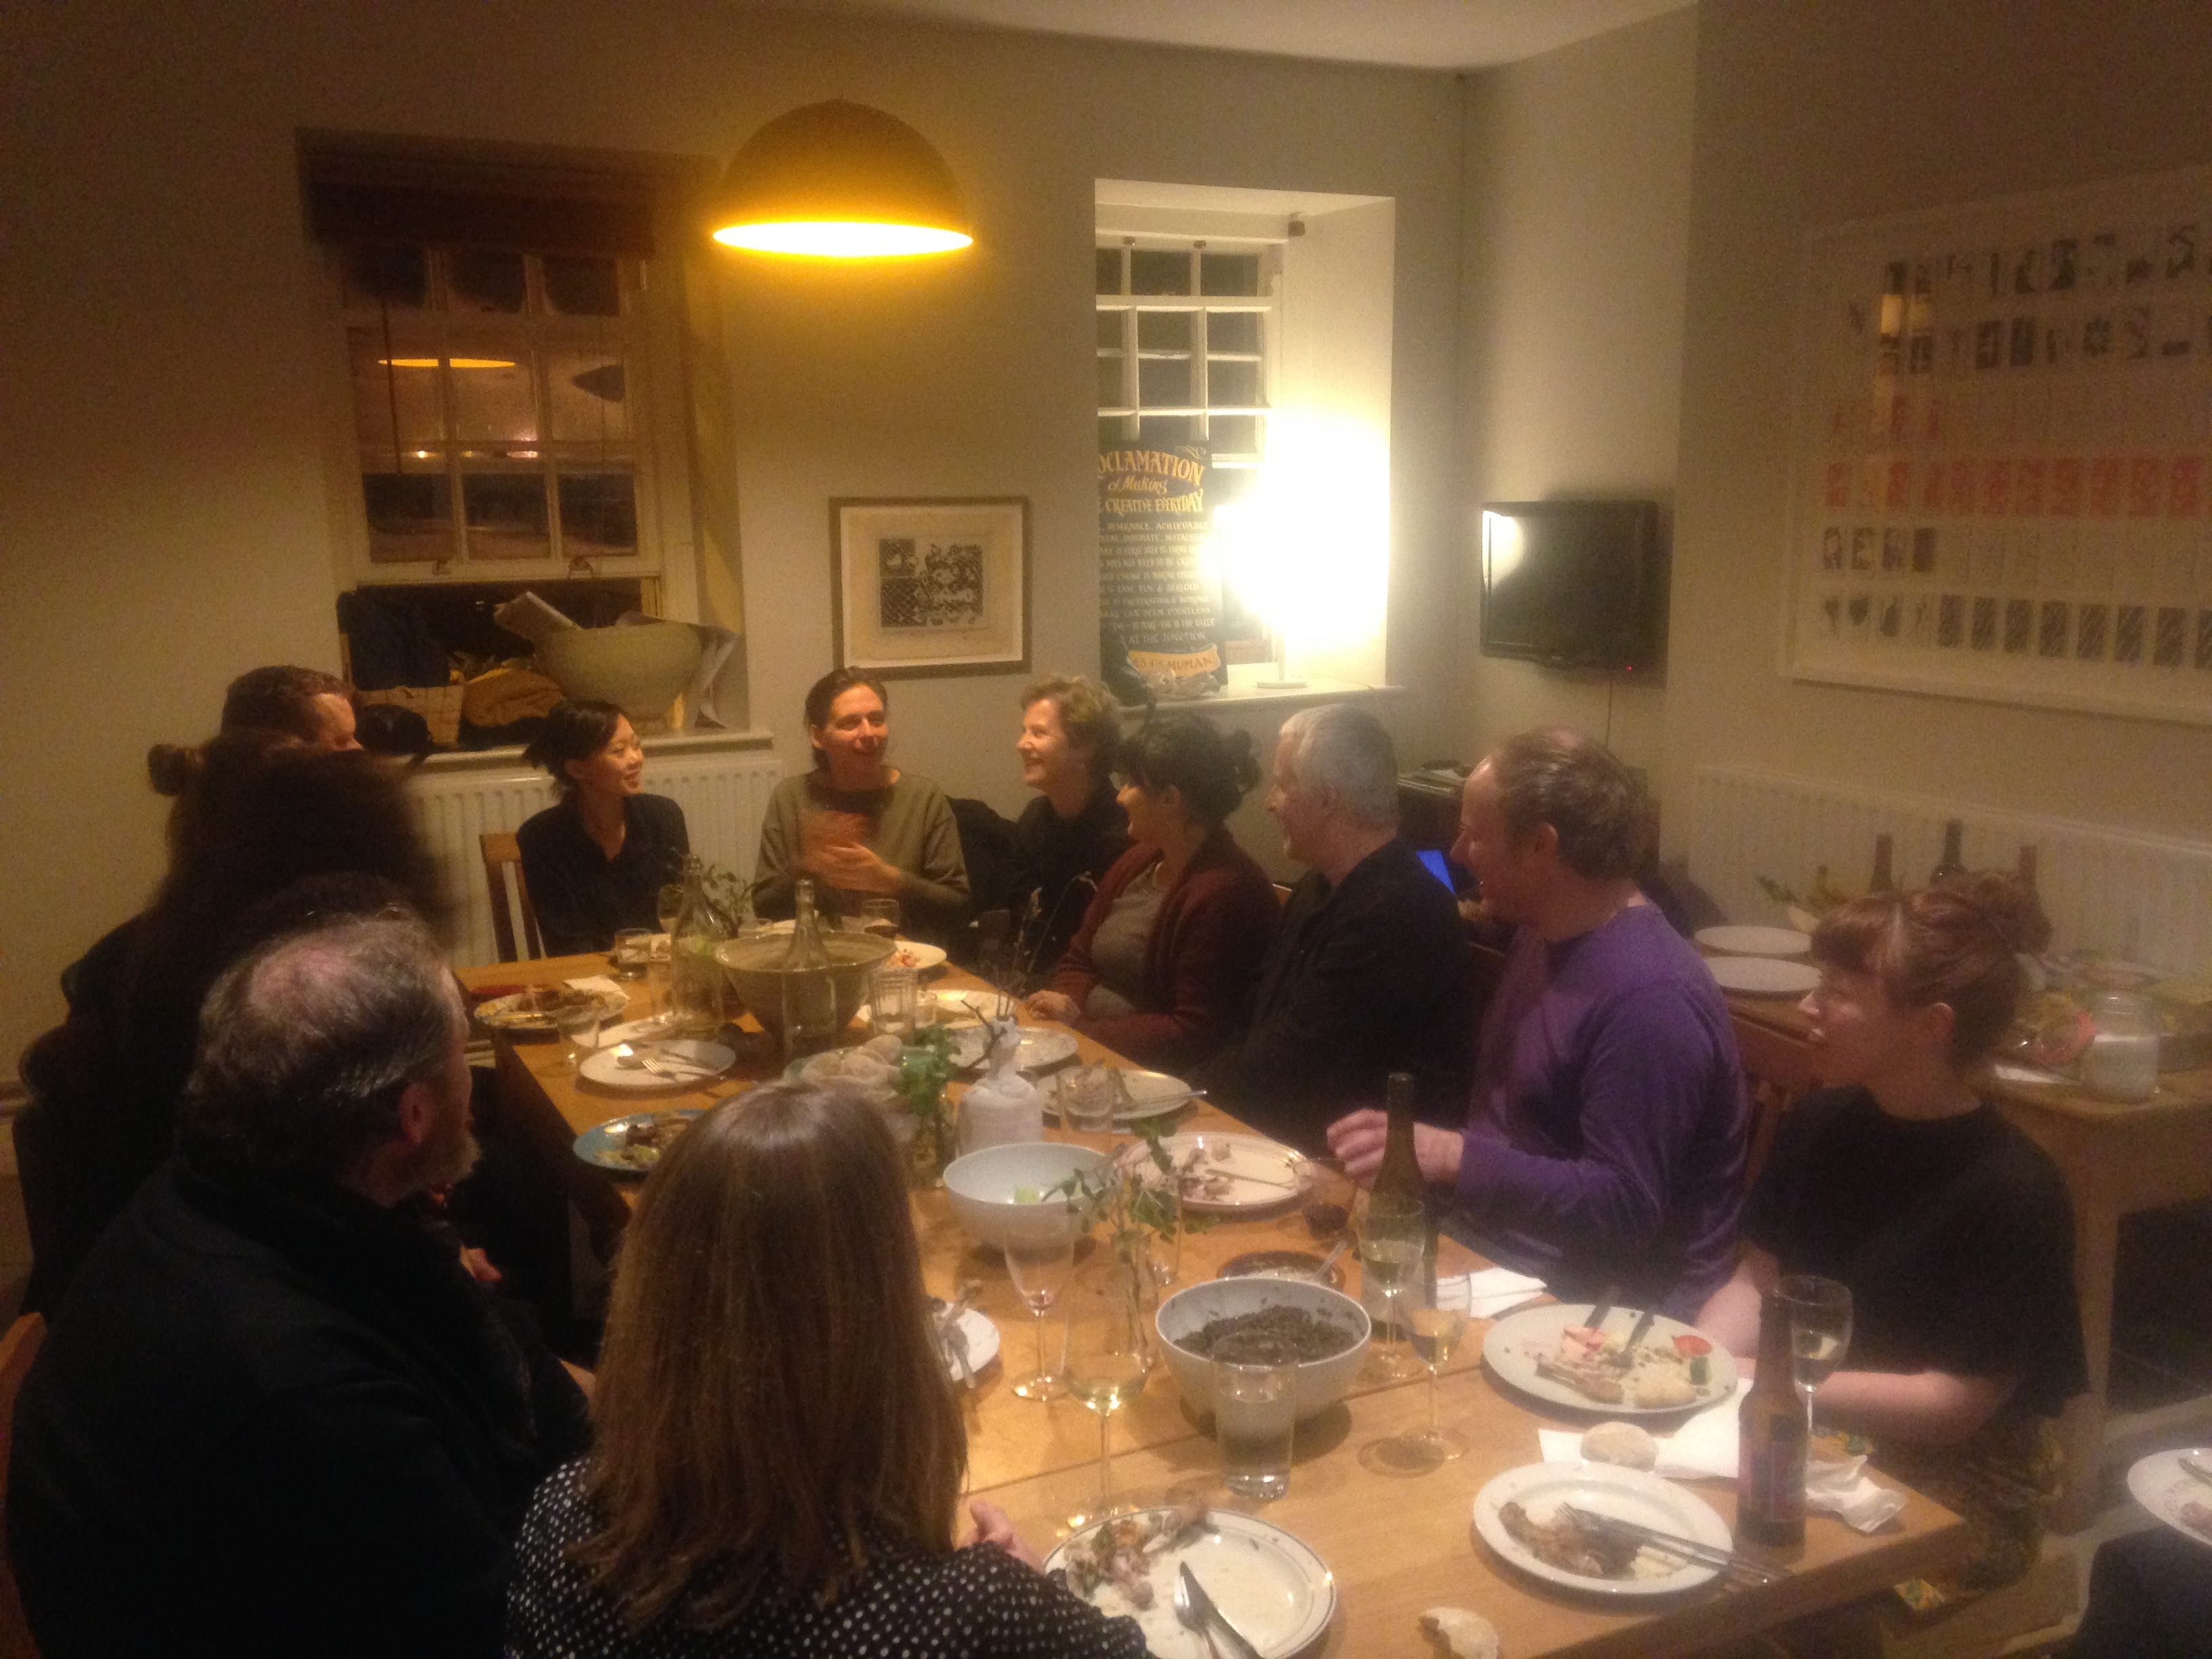 Final dinner with artists, students, participants in IMMA's Residency communal house.